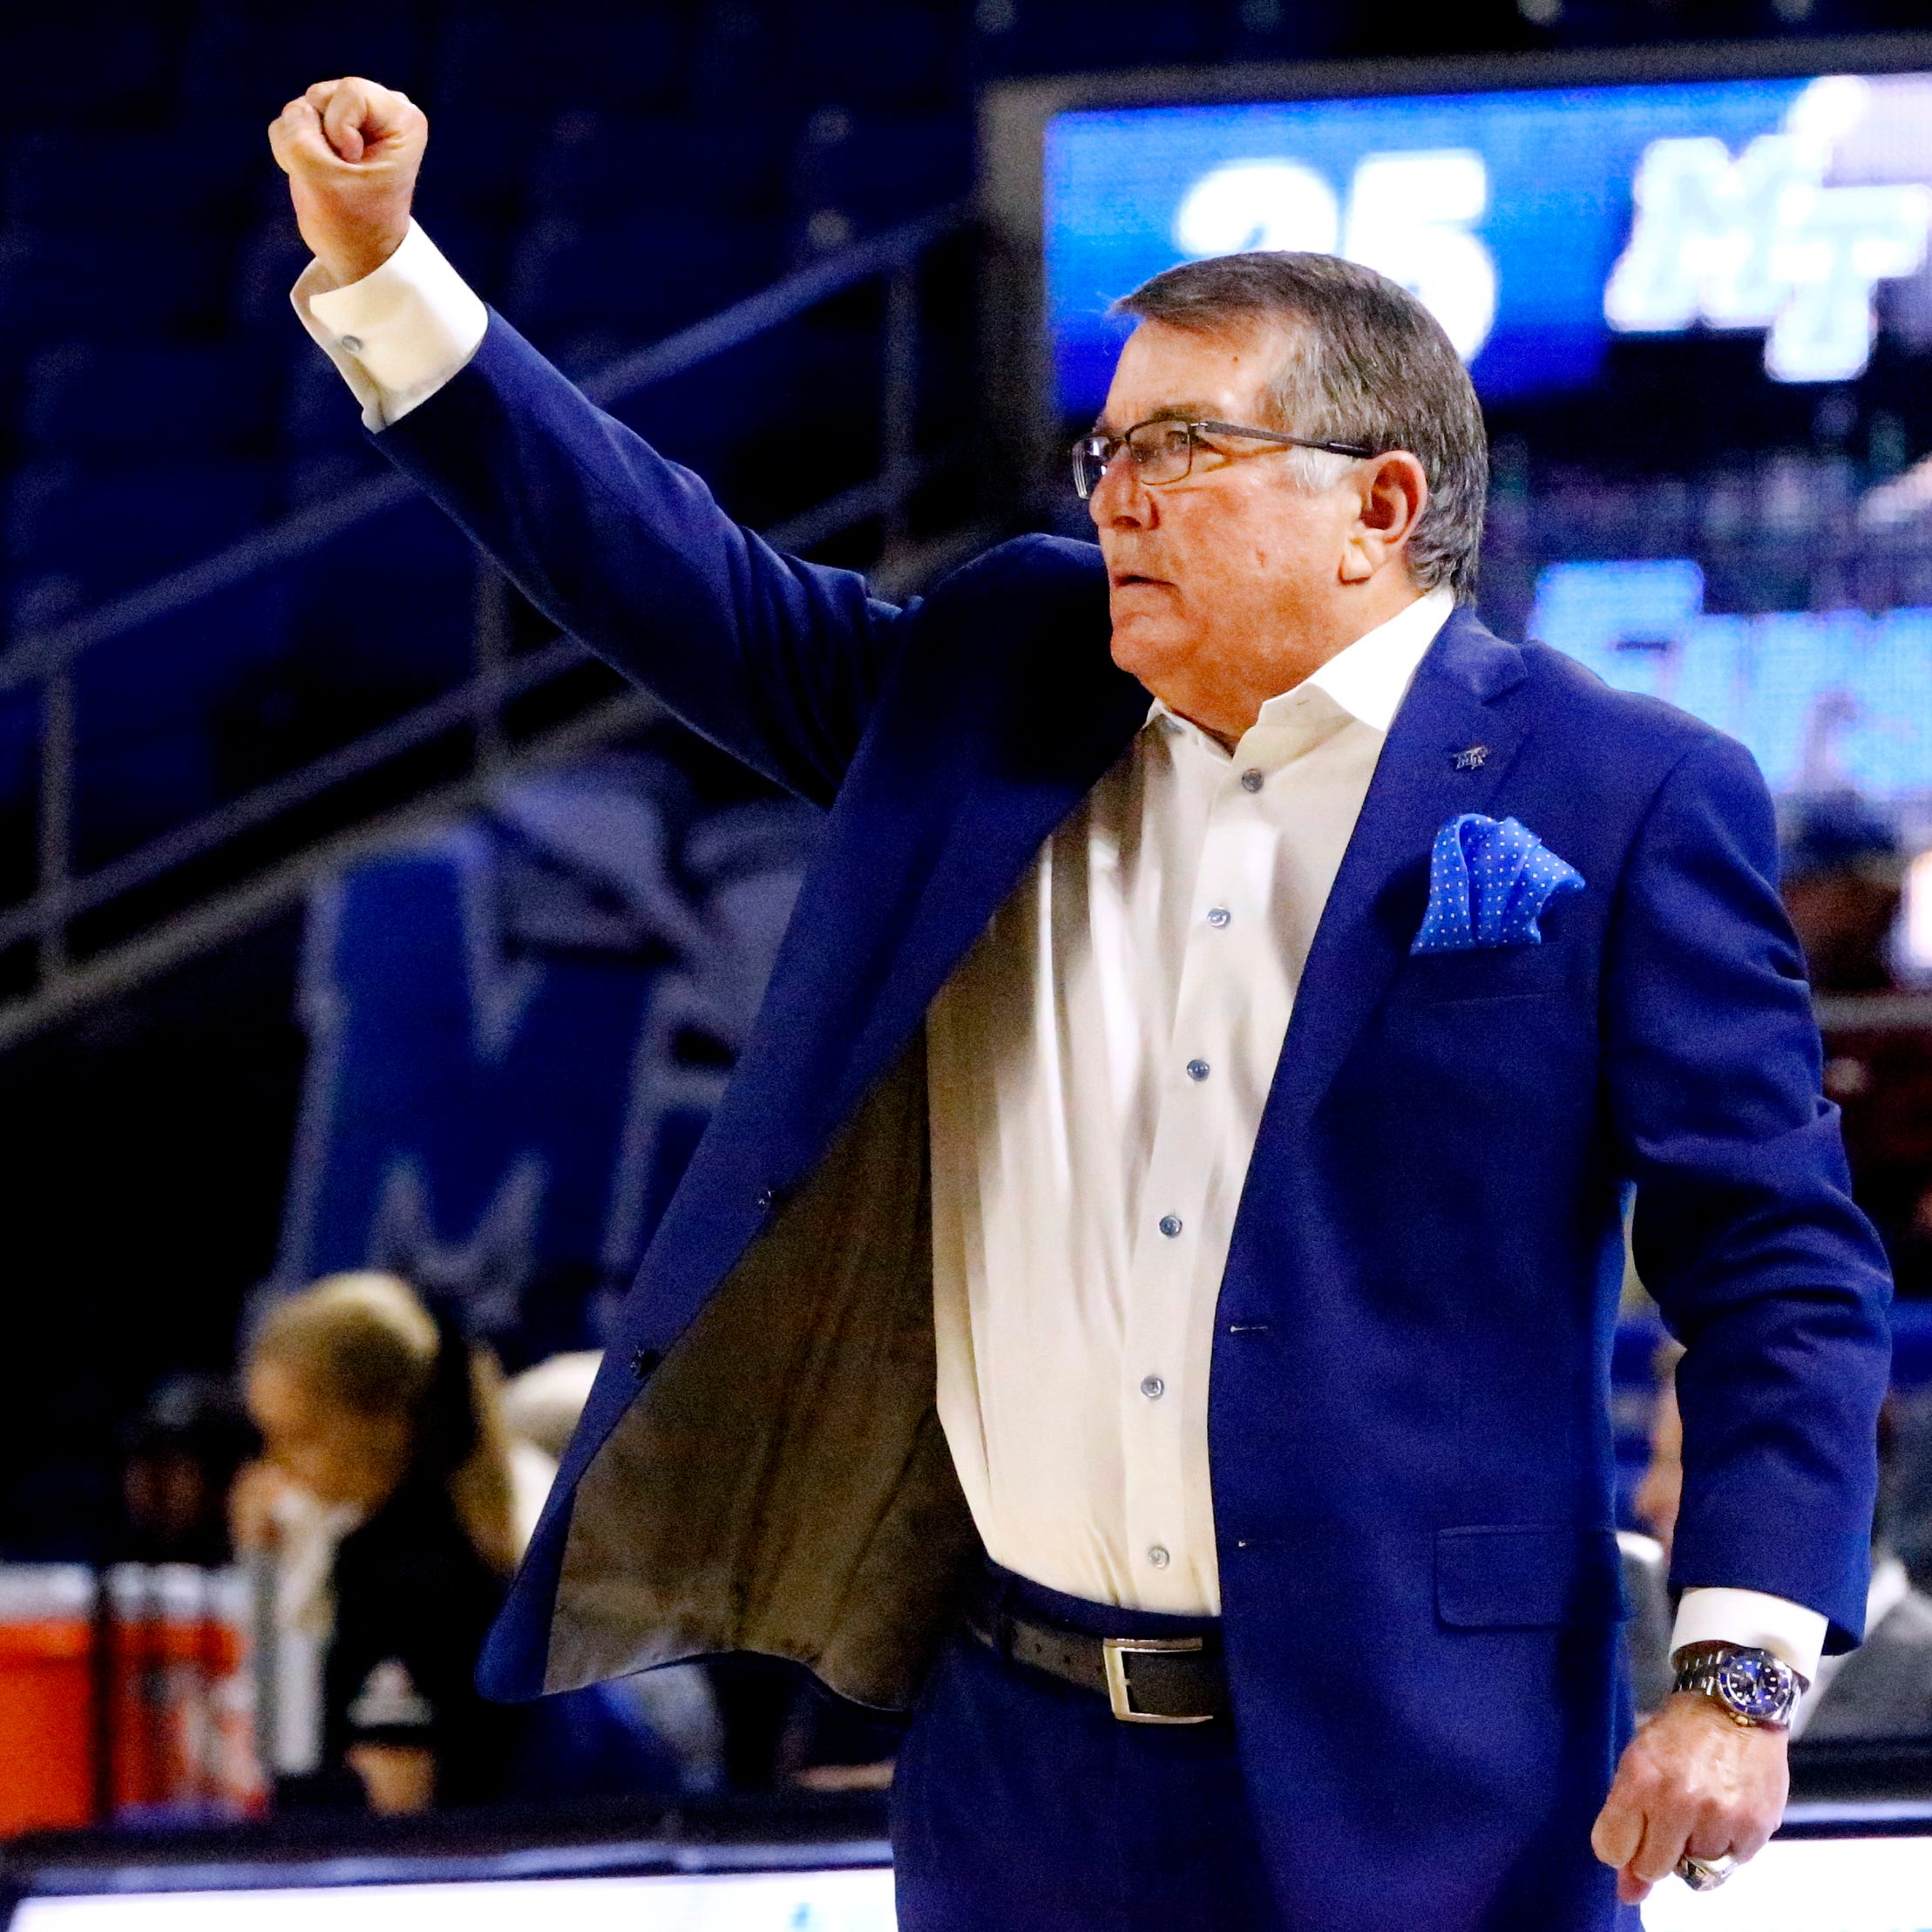 MTSU's head coach Rick Insell  on the sidelines during the game against Rice on Thursday Jan. 24, 2019.